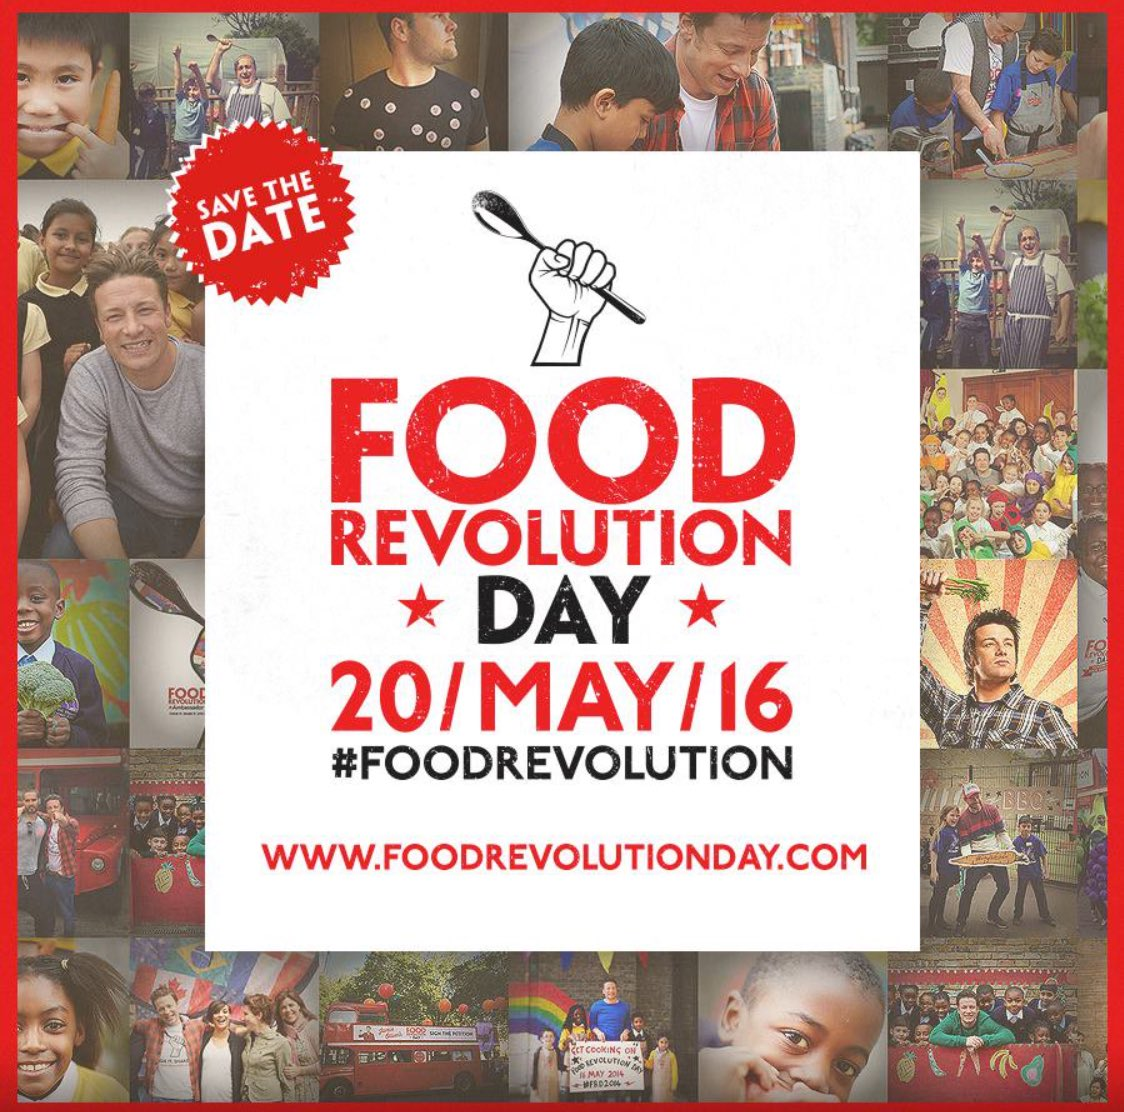 RT @Chefalilartiste: Save the date 20th May Jamie's #FoodRevolution Kenya are you ready? Let's teach our kids to eat & cook healthy https:/…